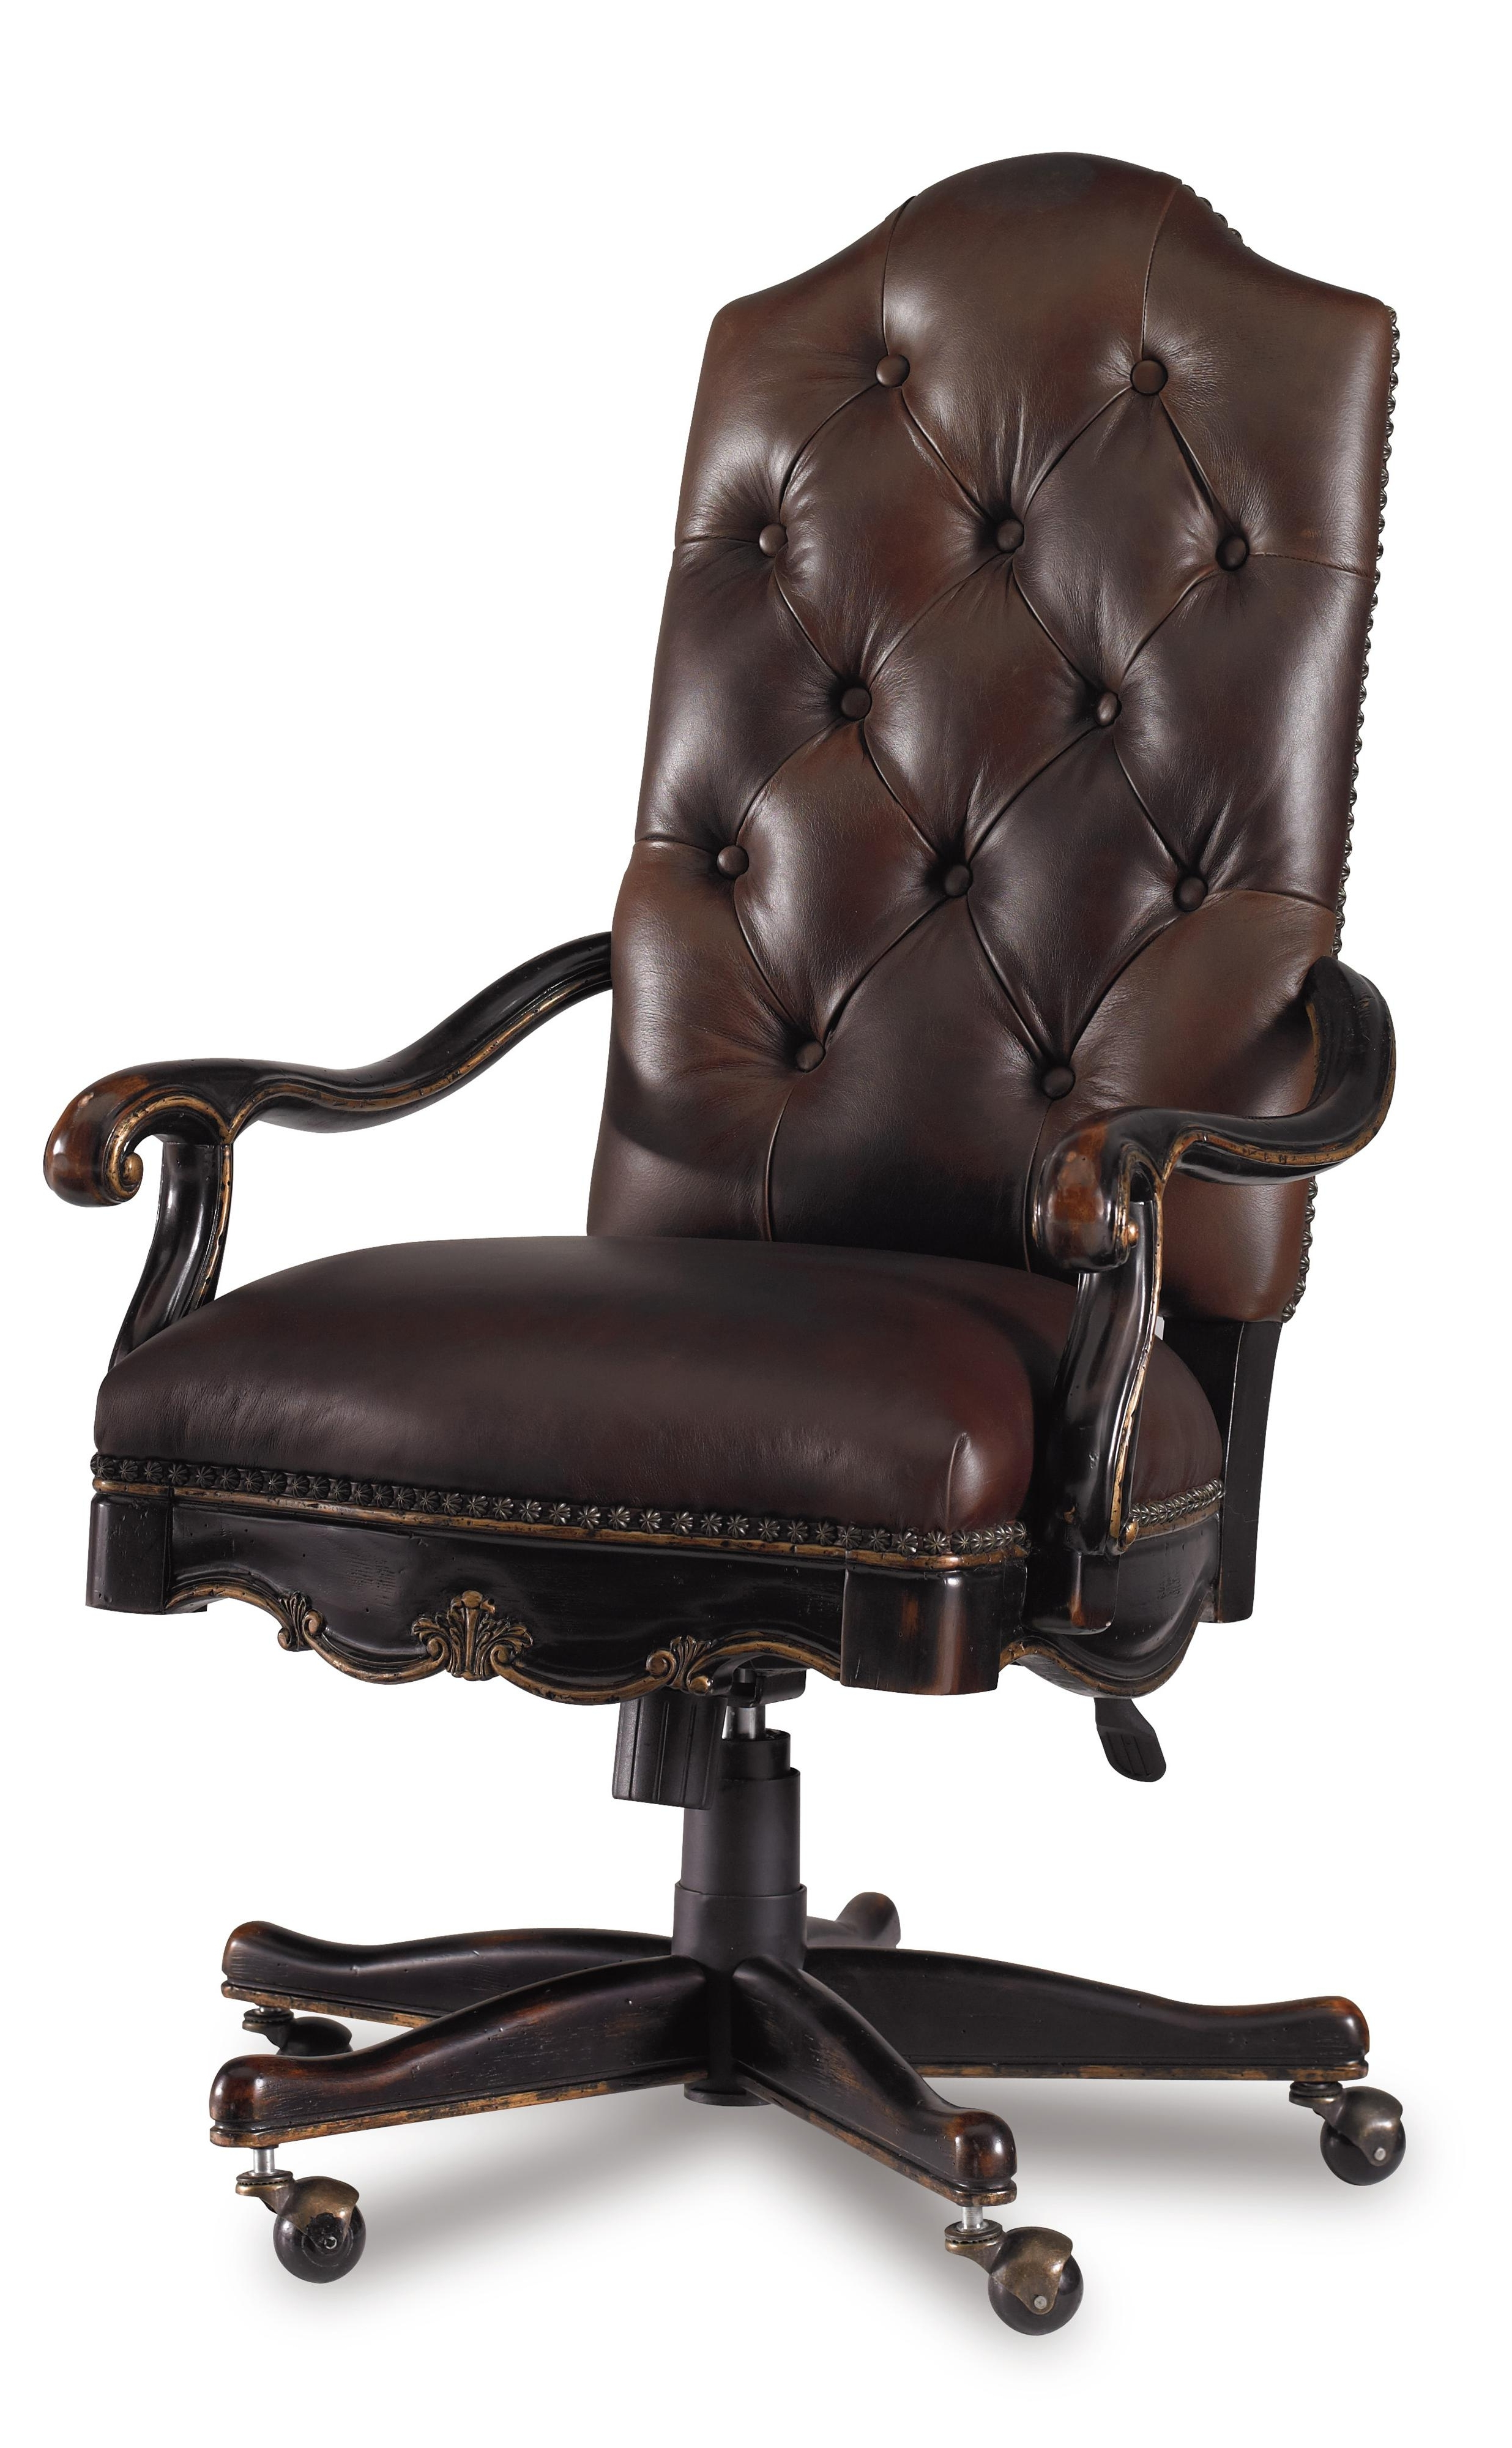 Wrought Iron Chairs Outdoor Tags : Executive Leather Office Chair Intended For Fashionable Executive Office Armchairs (View 20 of 20)